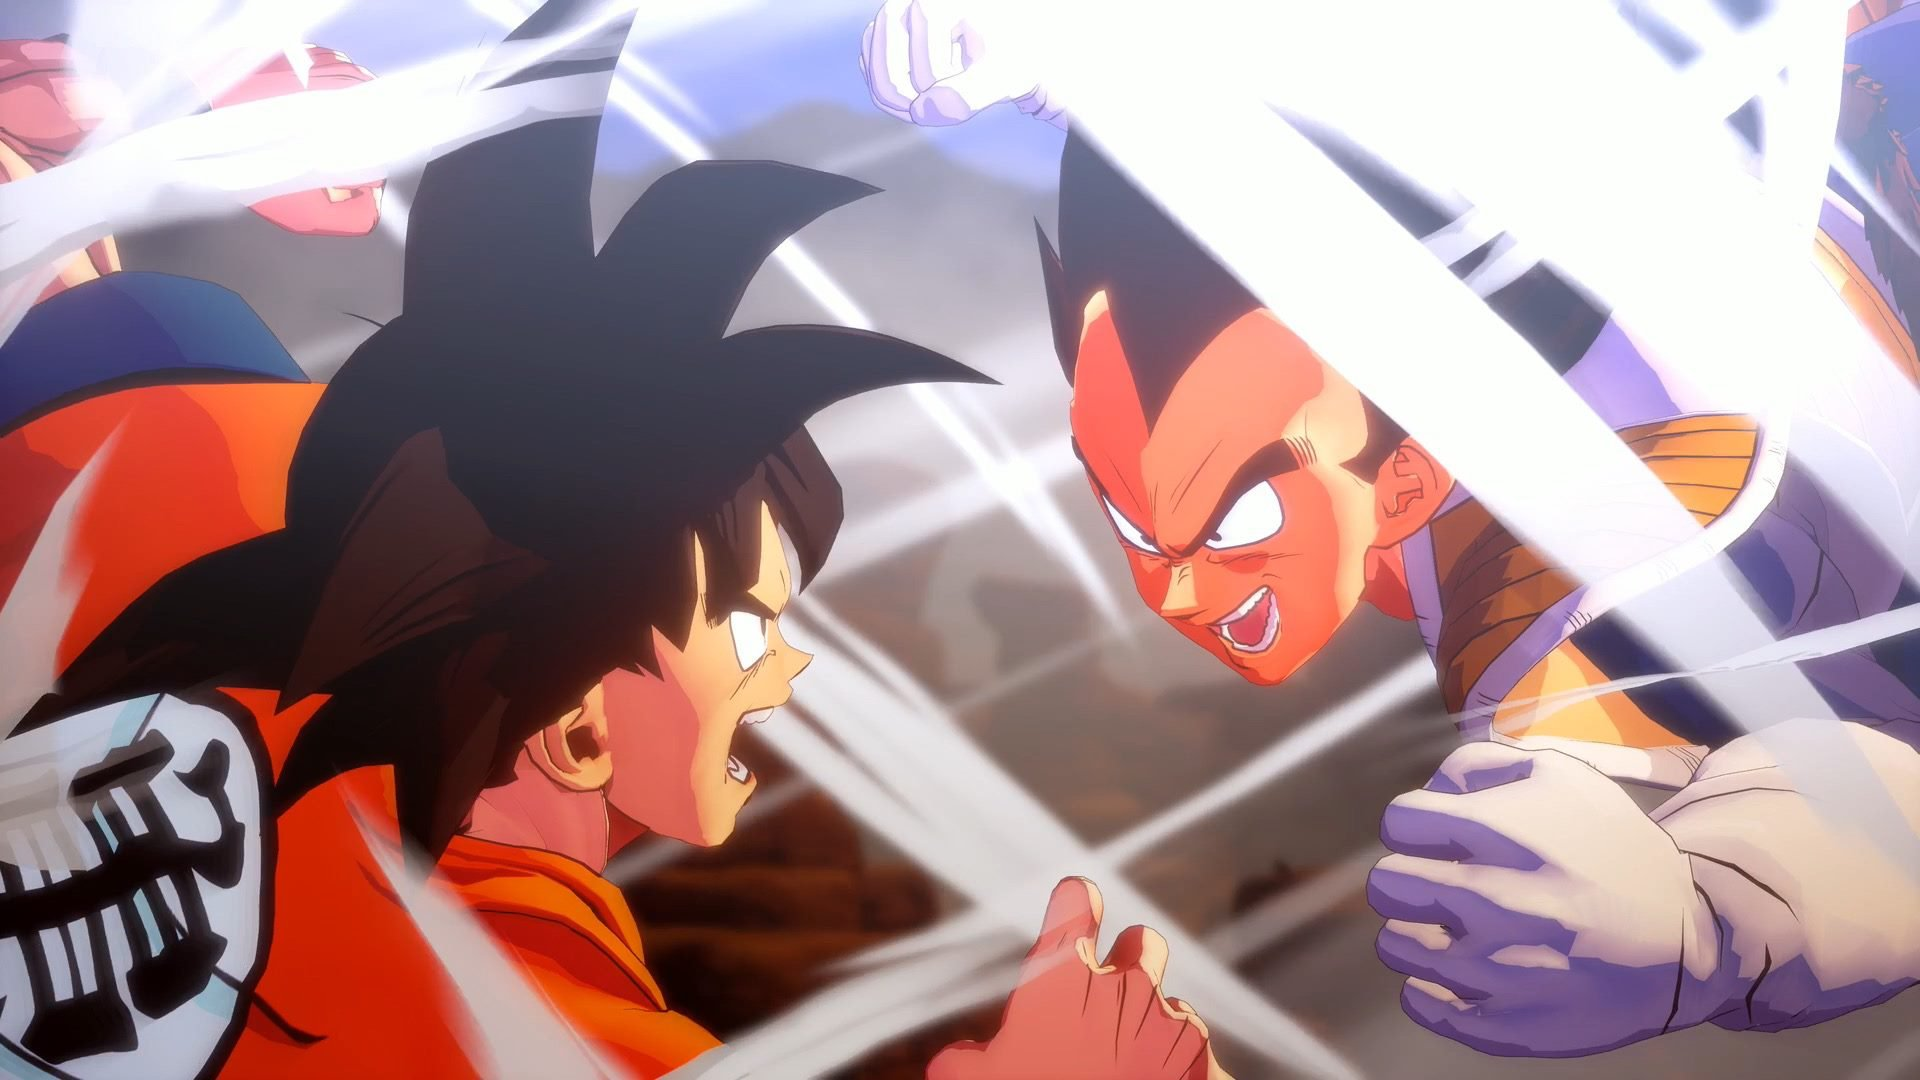 Dragon Ball Z Kakarot The Iconic Battles Of The Z Saga In New Images